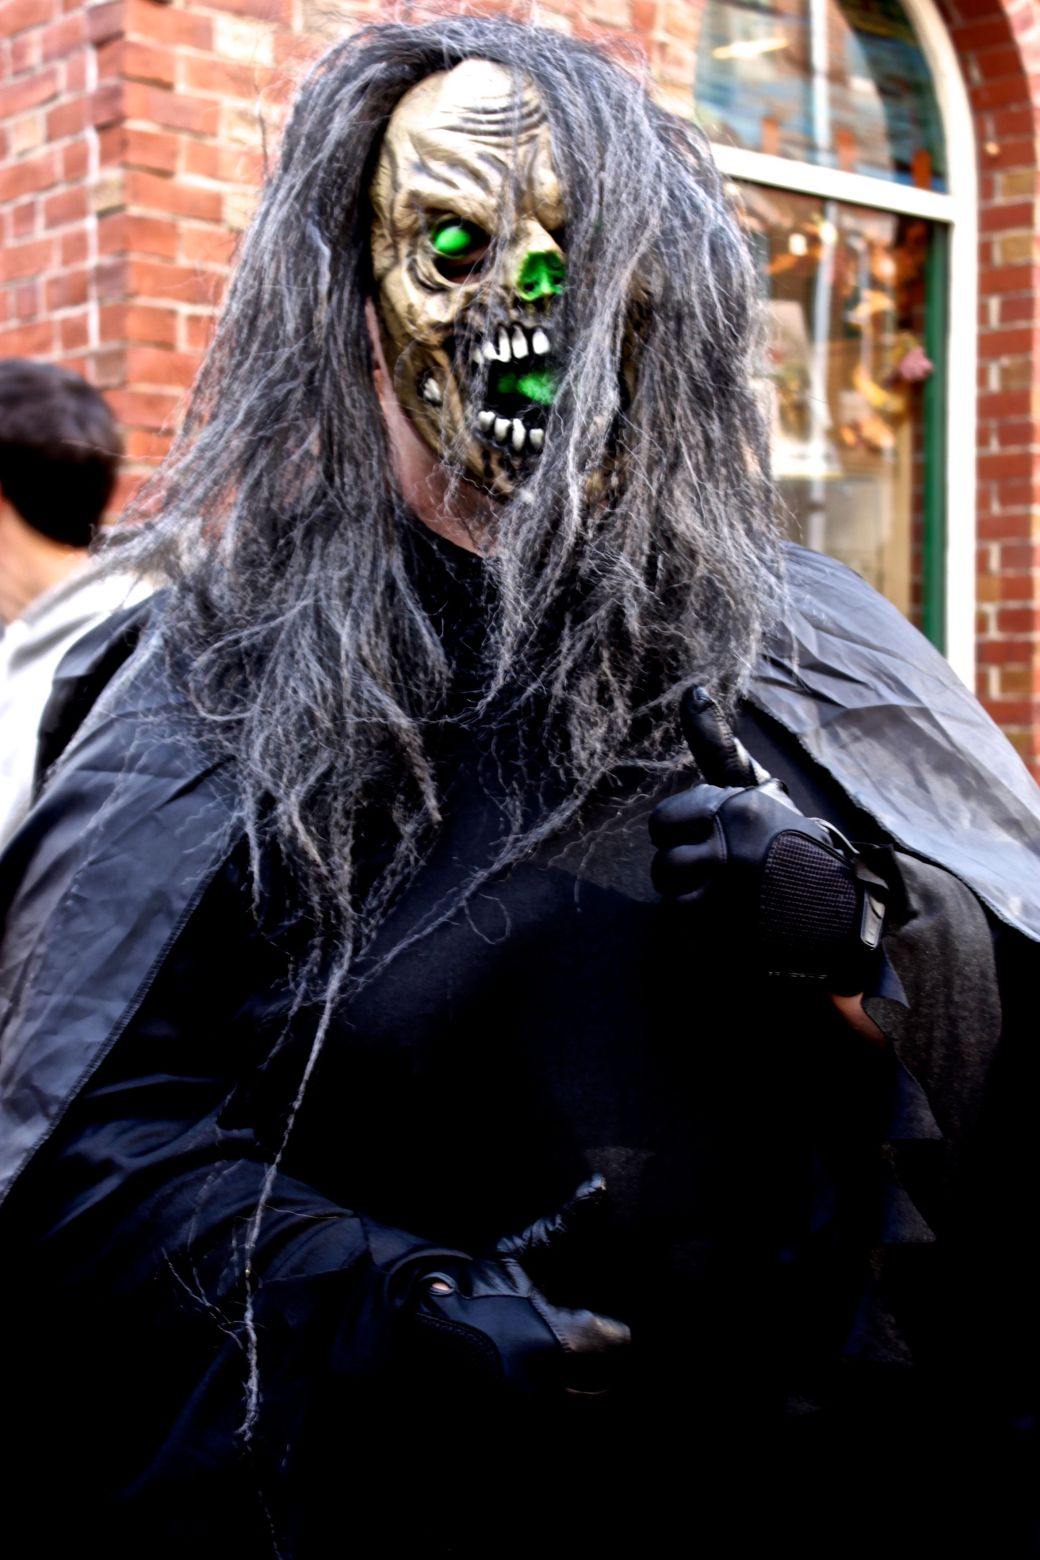 salem halloween 2013 green skeleton mask